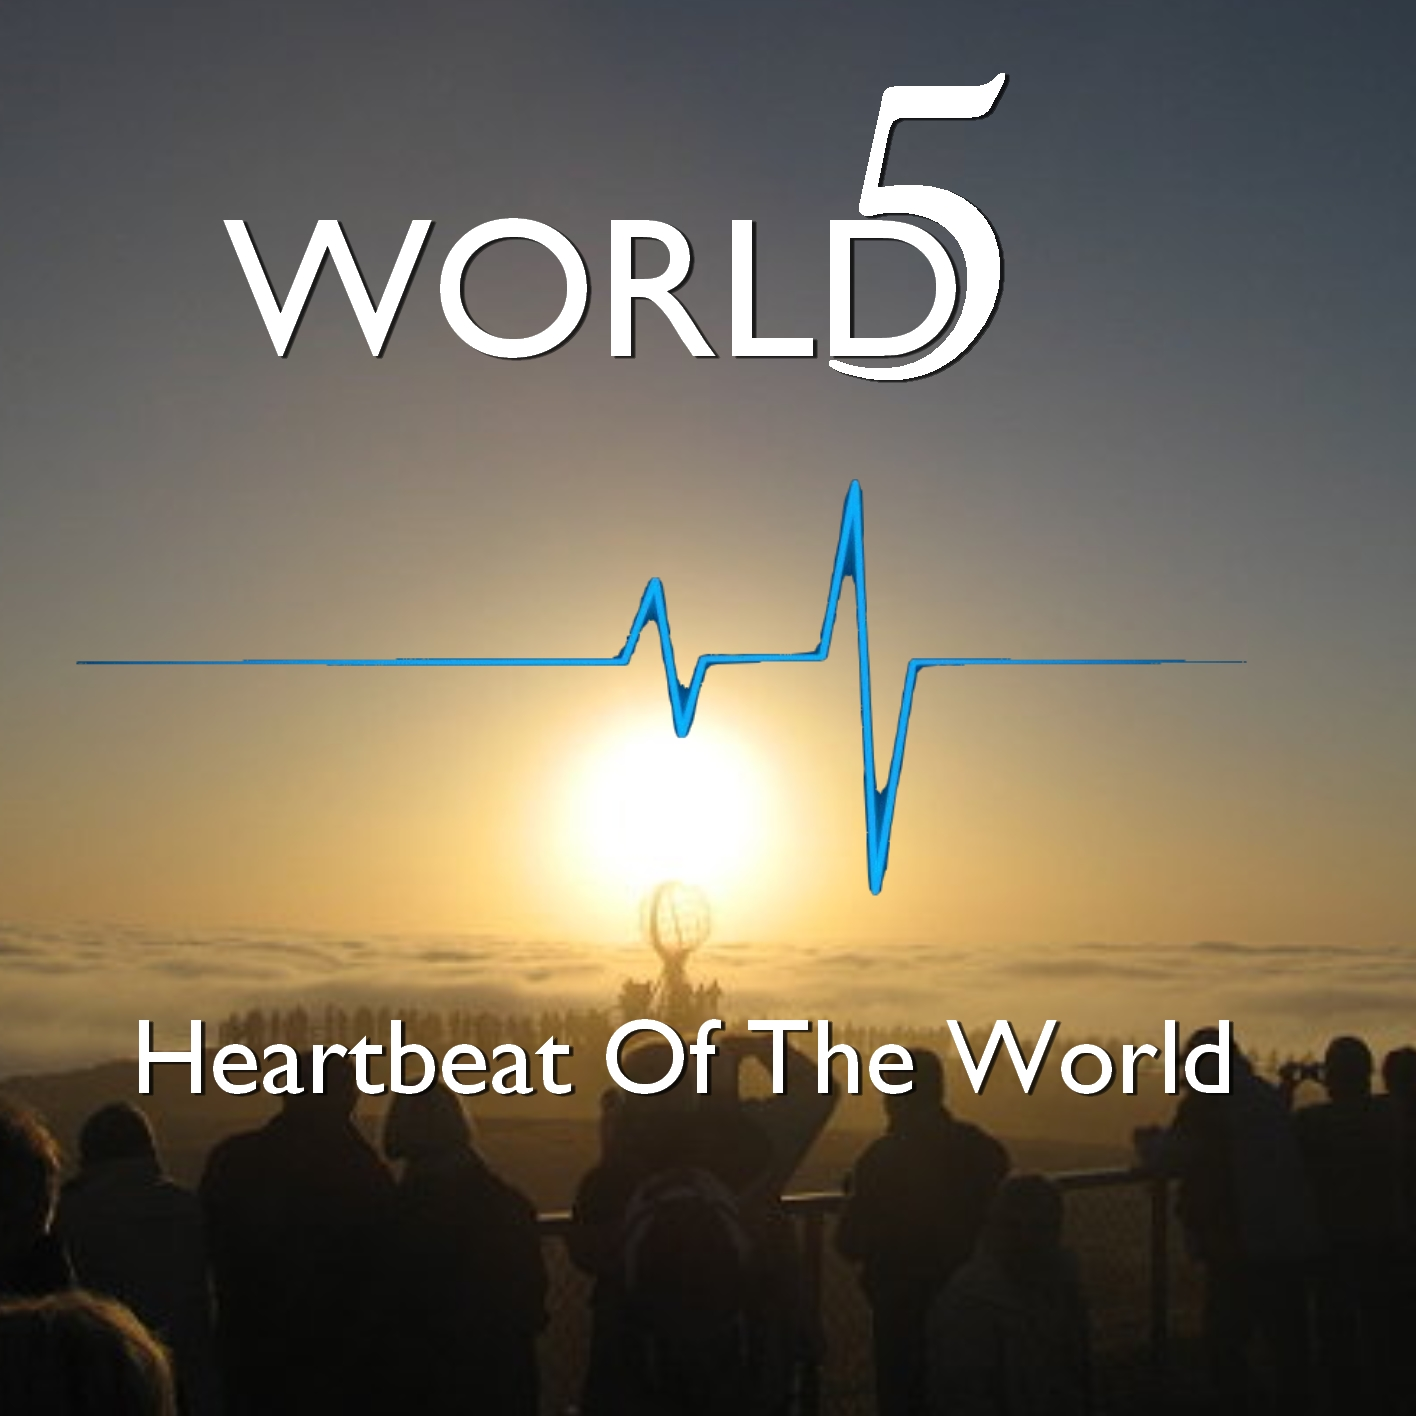 World5 - Heartbeat Of The World